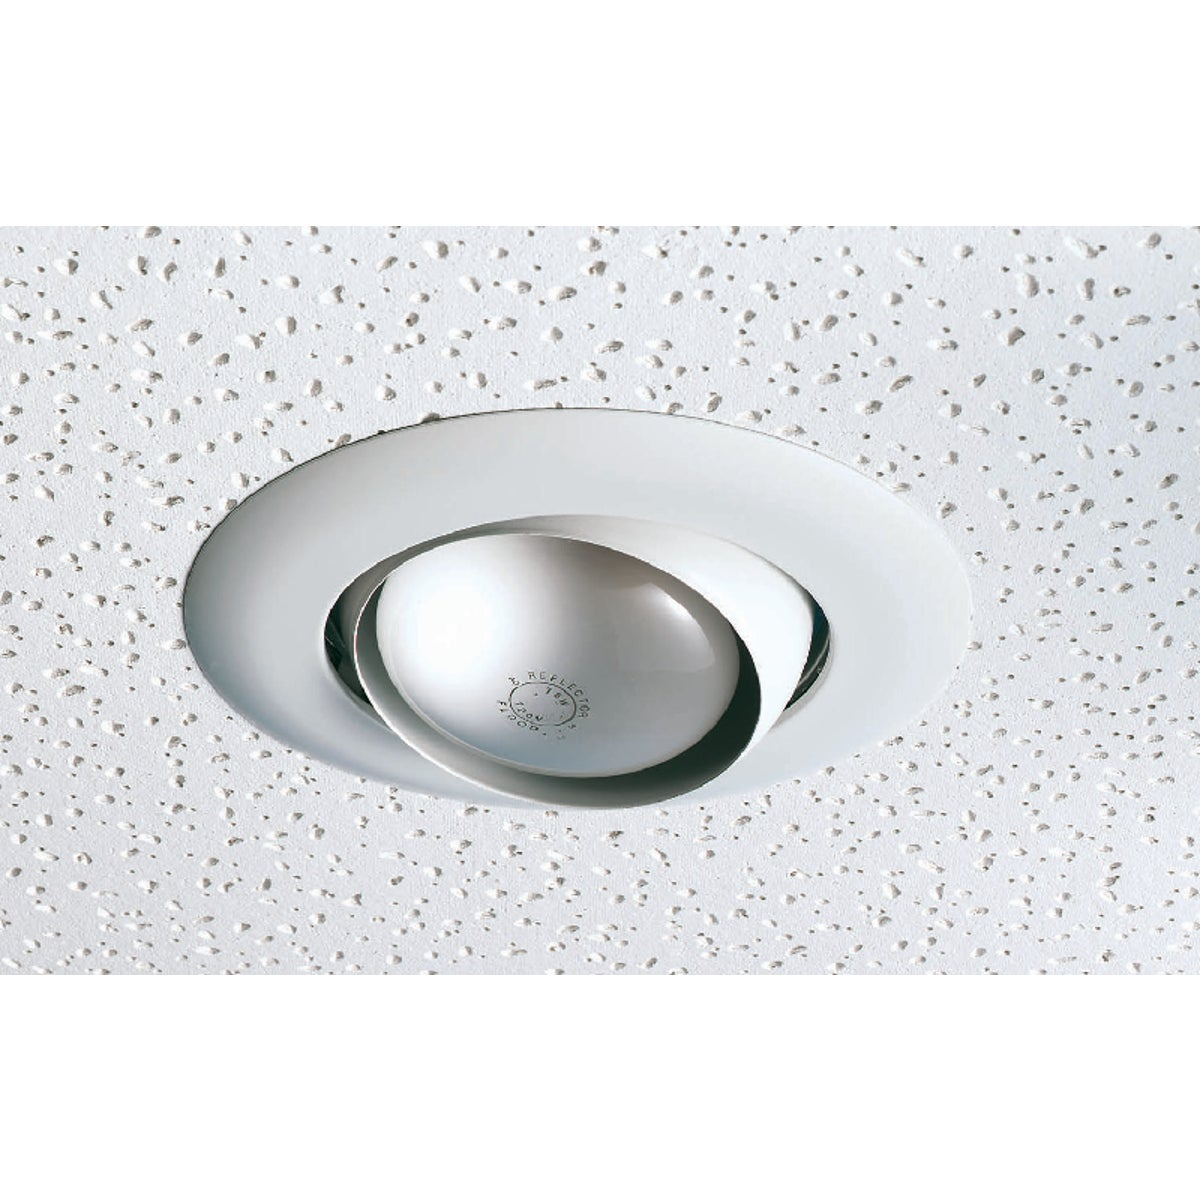 WHT RECESS FIXTURE TRIM - TR18W by Philips Consumer Lum